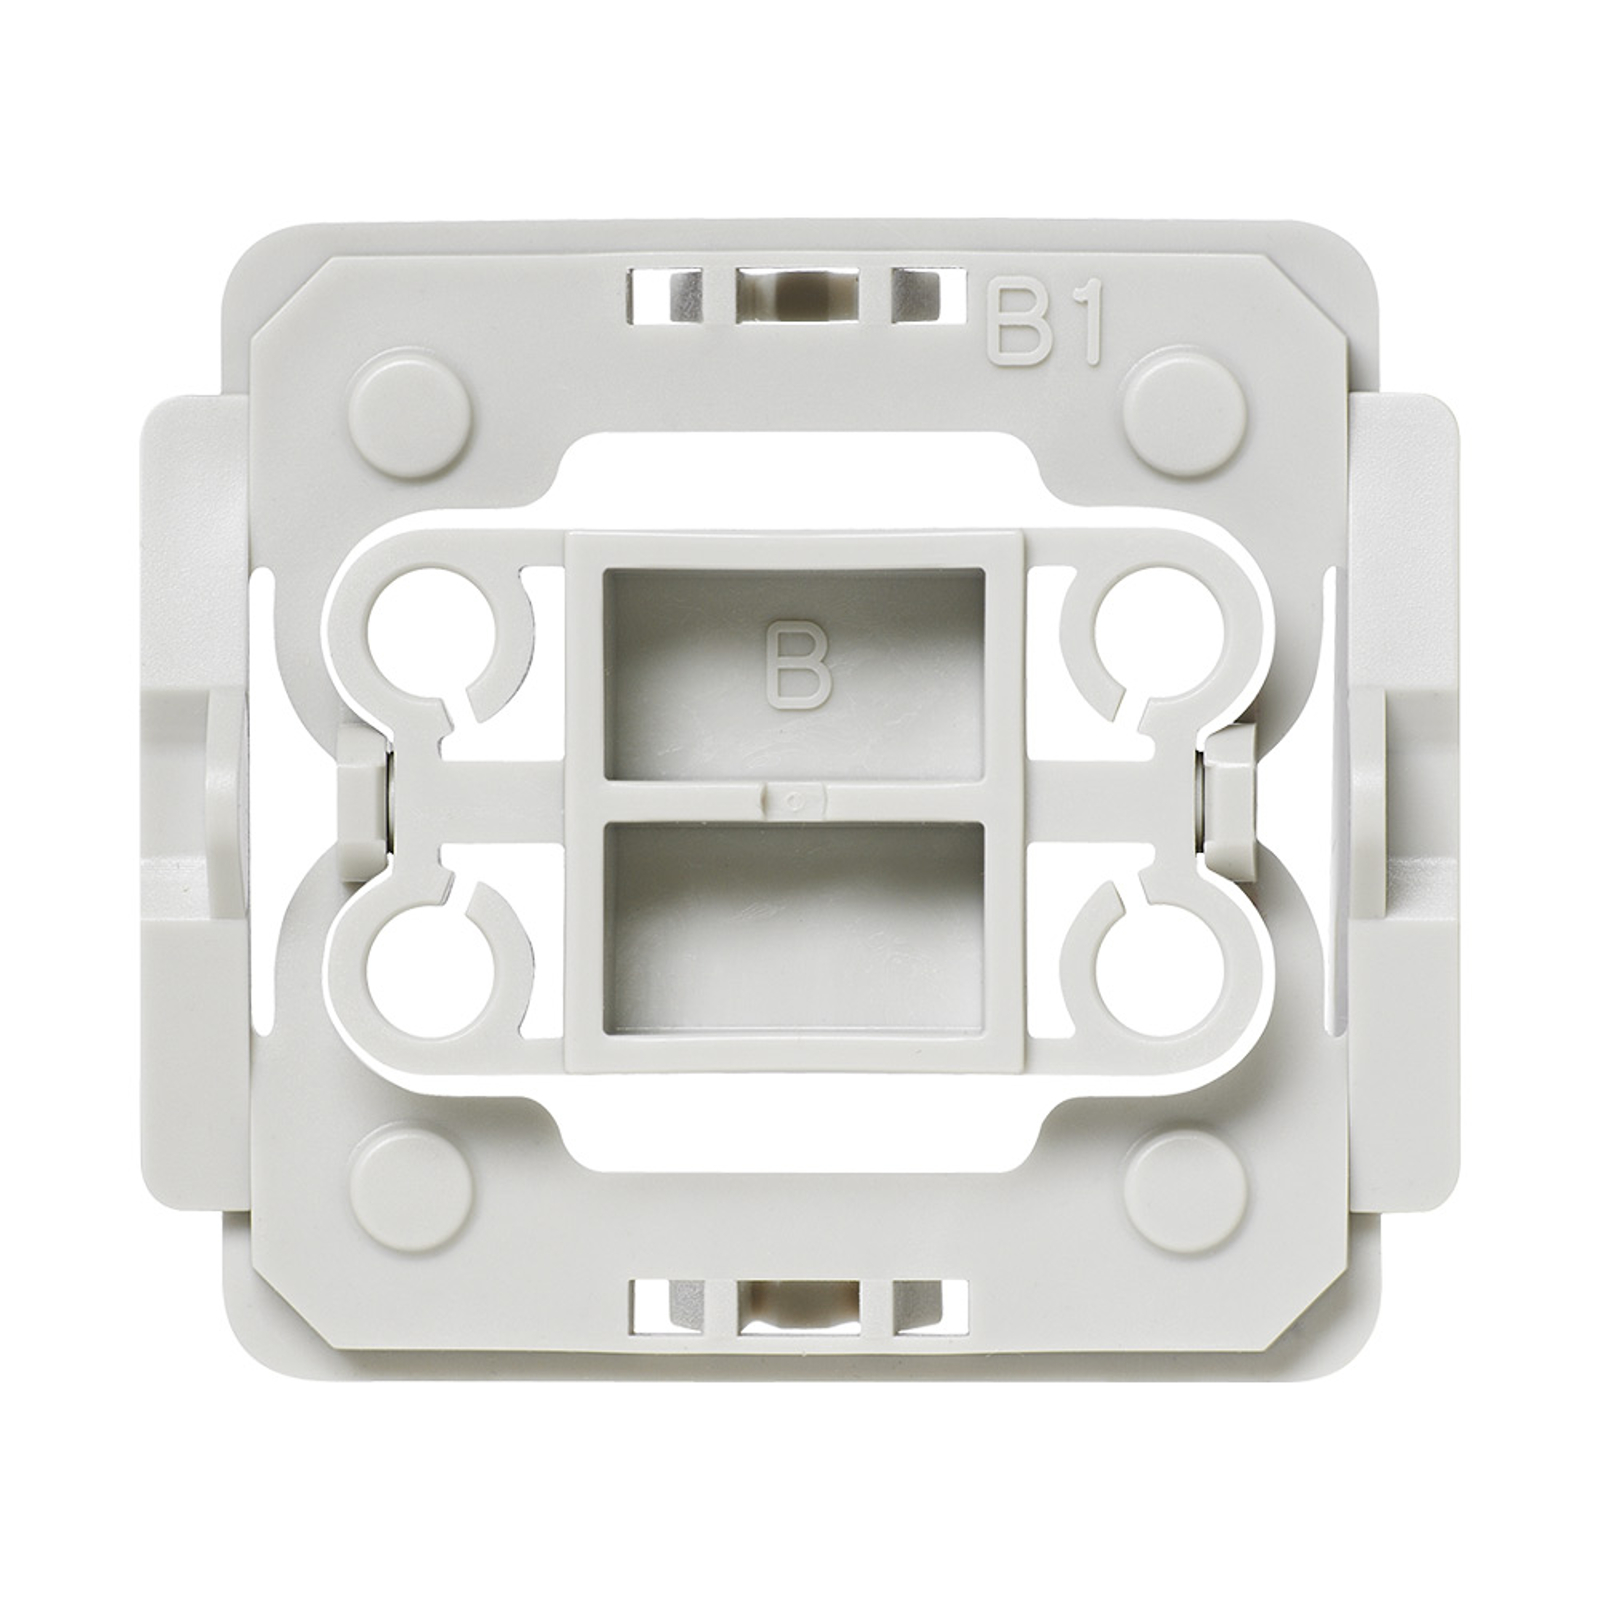 Homematic IP Adapter für Berker Schalter B1 20x